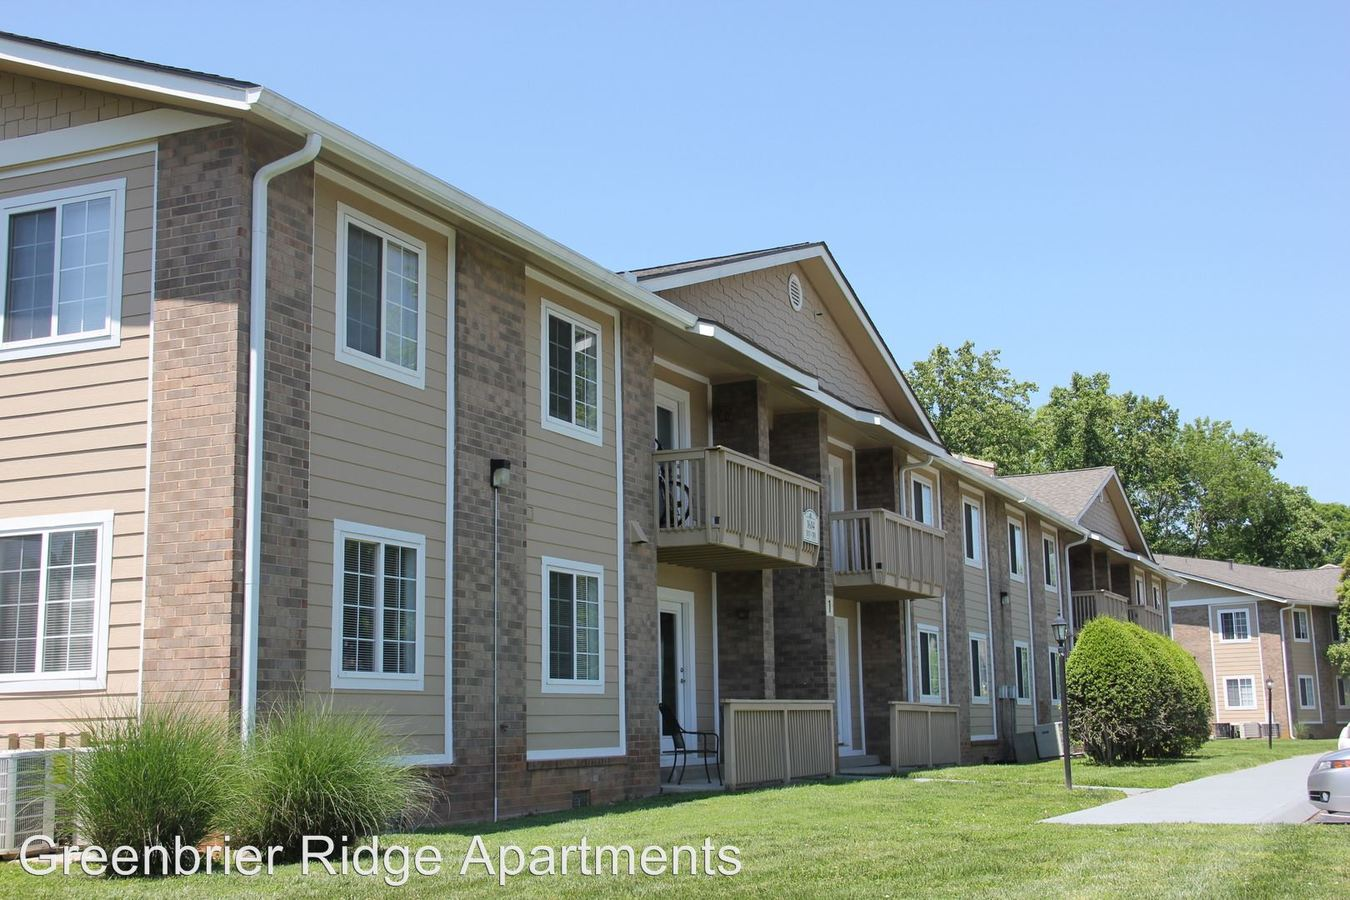 1 Bedroom 1 Bathroom Apartment for rent at Greenbrier Ridge in Knoxville, TN